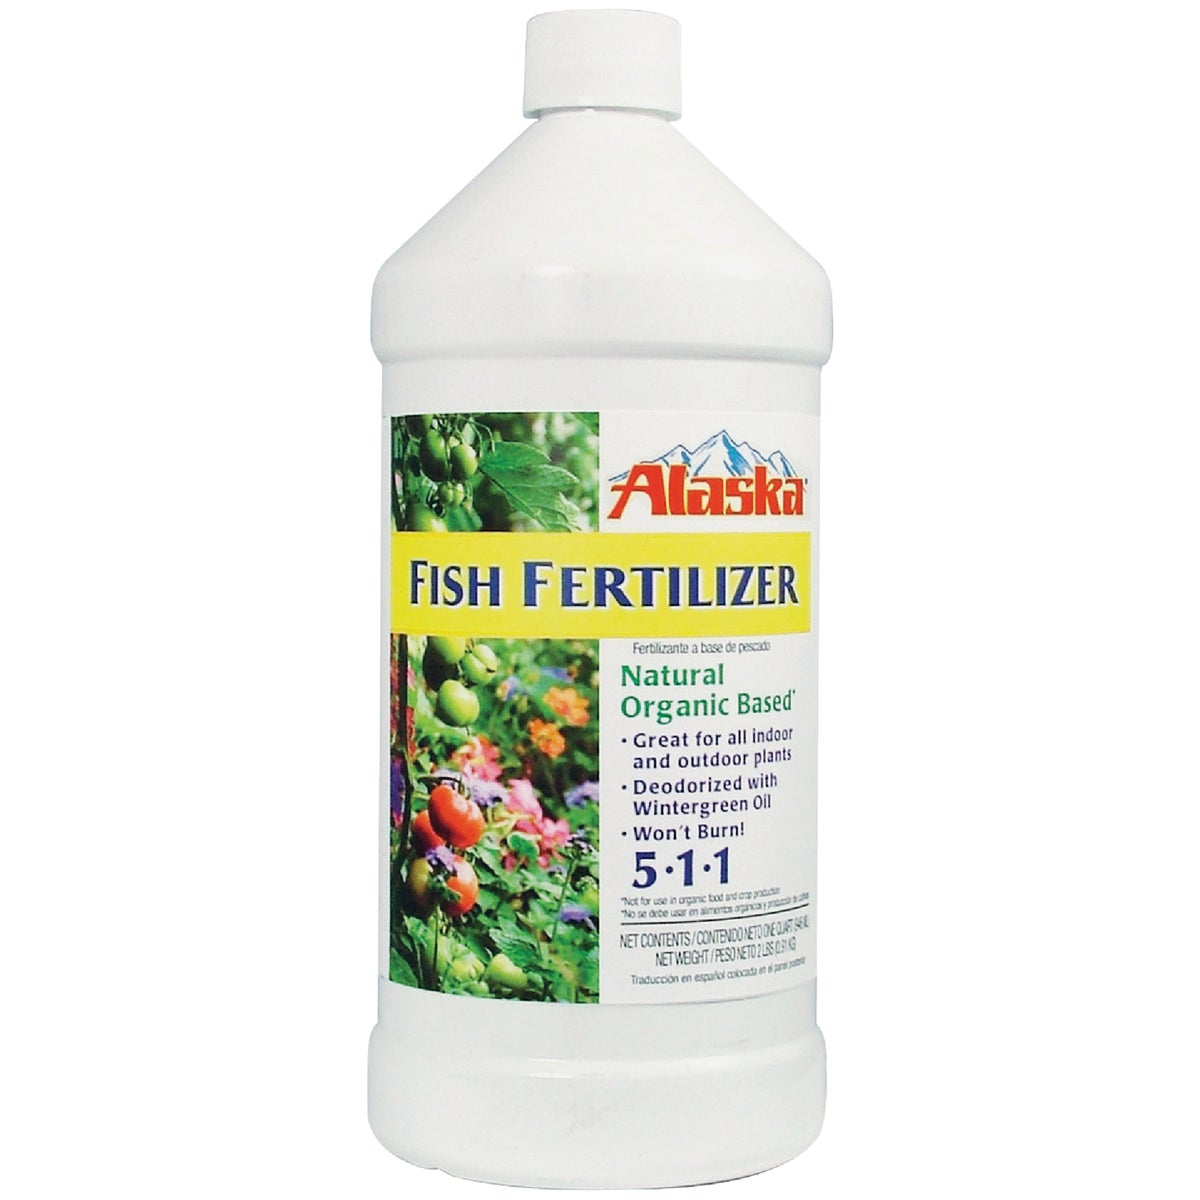 QUART FISH FERTILIZER